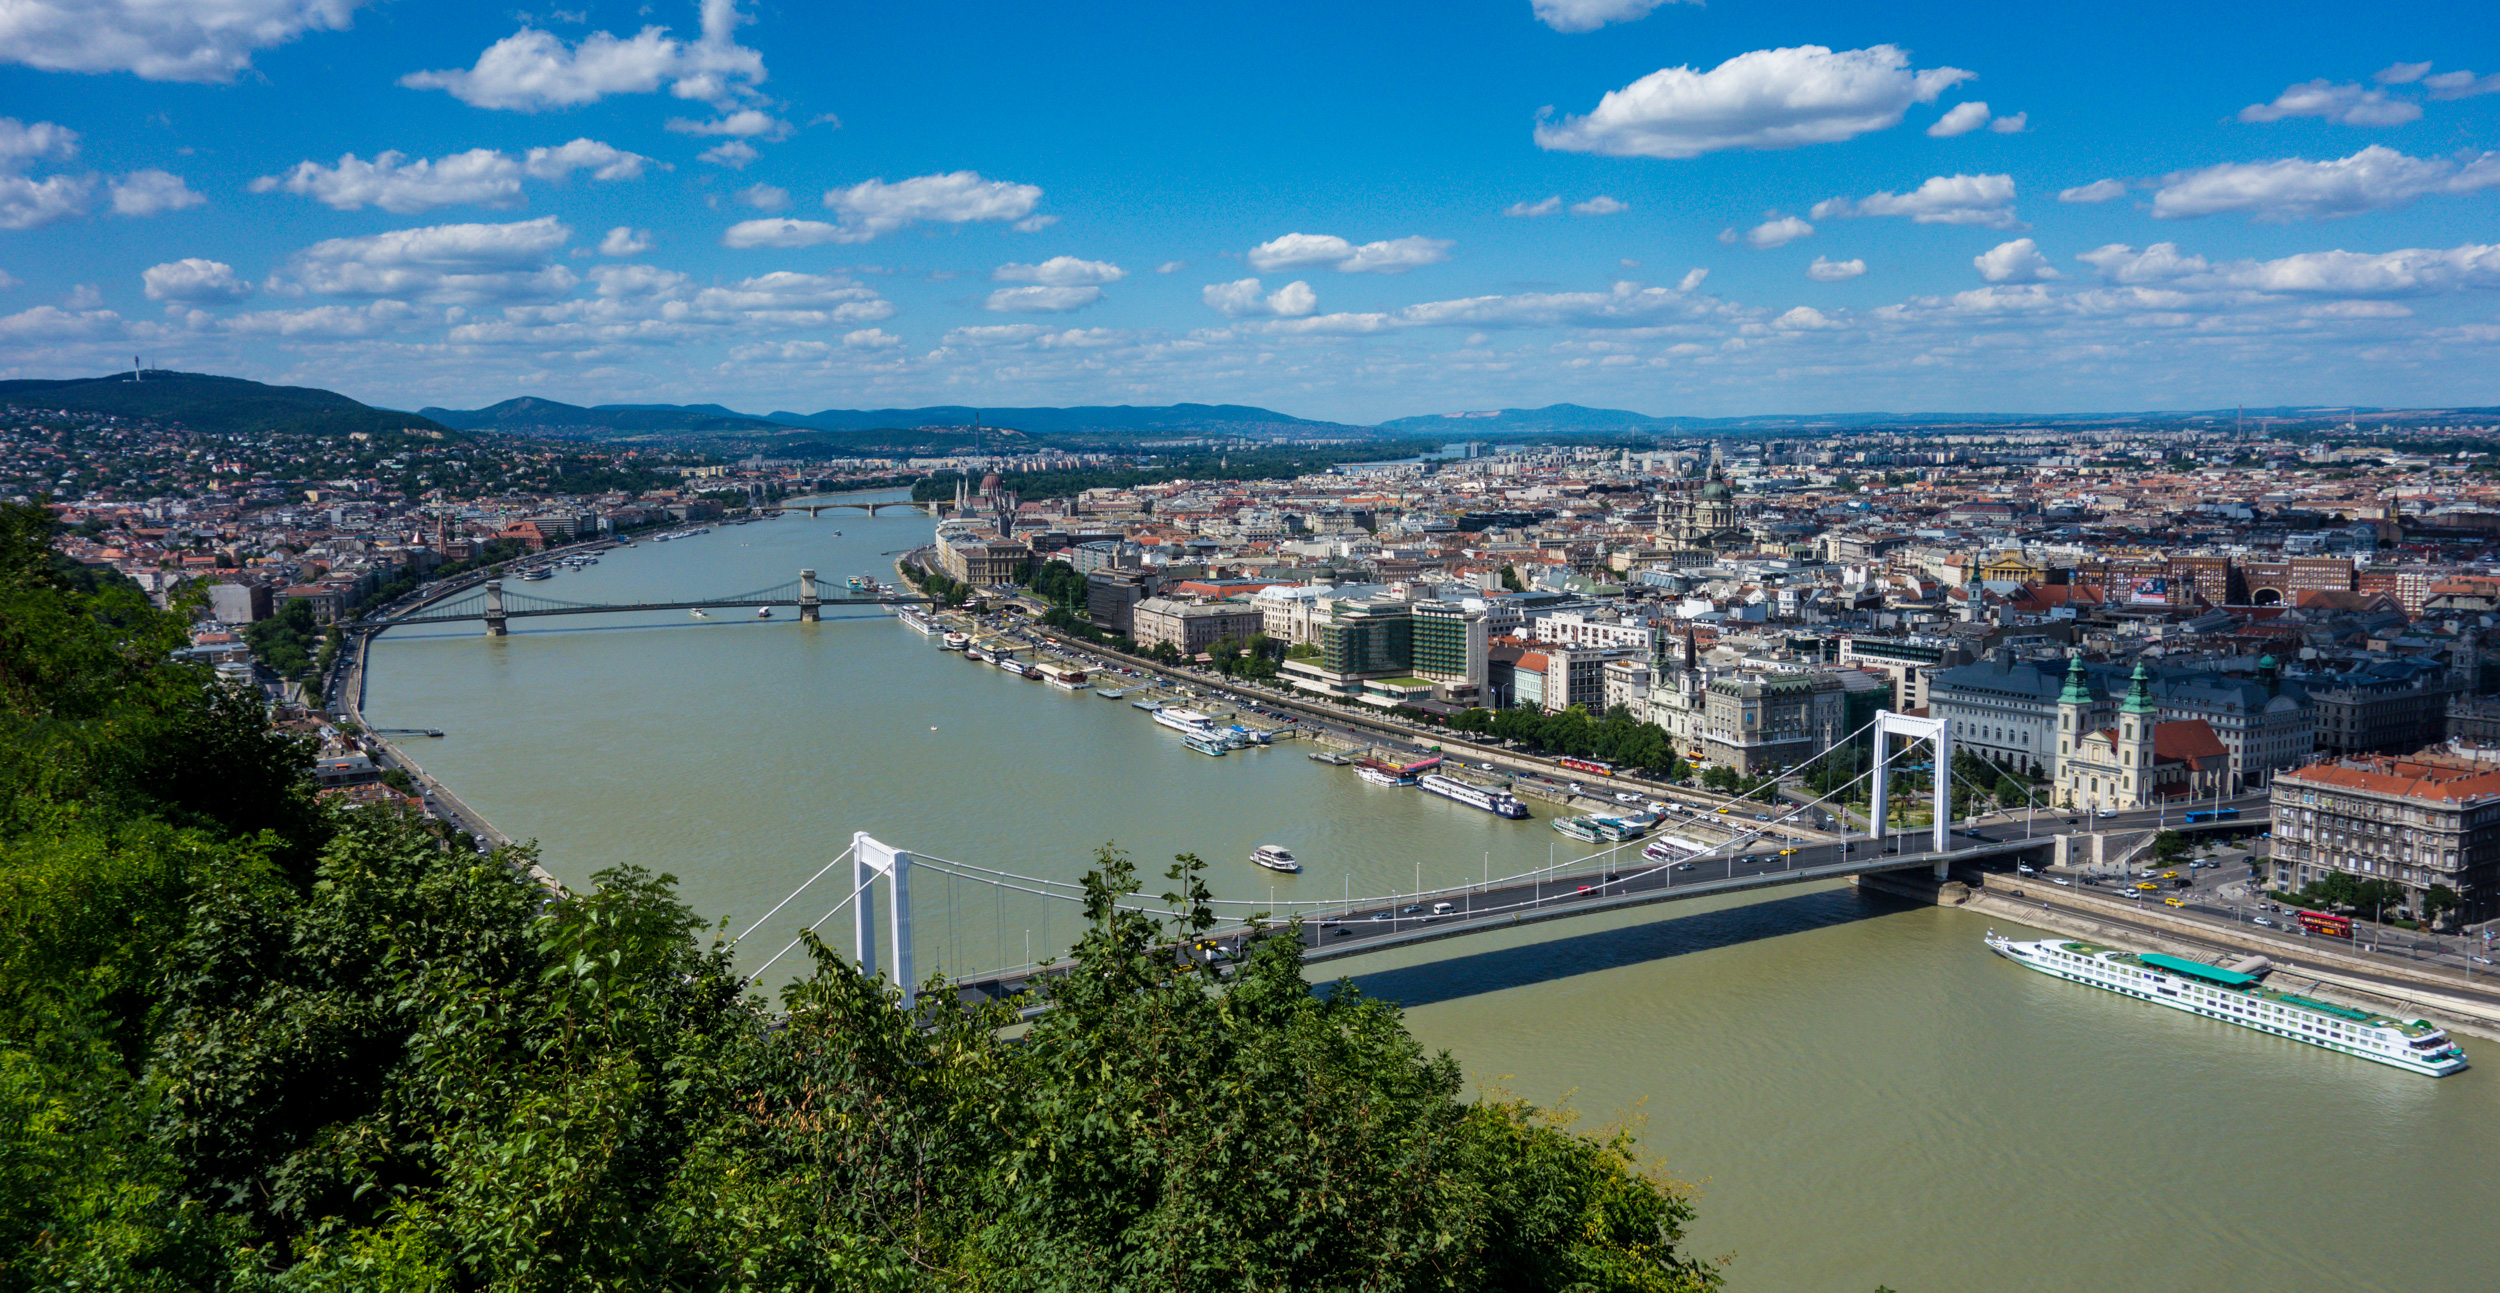 View_from_Gellért_Hill_to_the_Danube,_Hungary_-_Budapest_(28493220635)